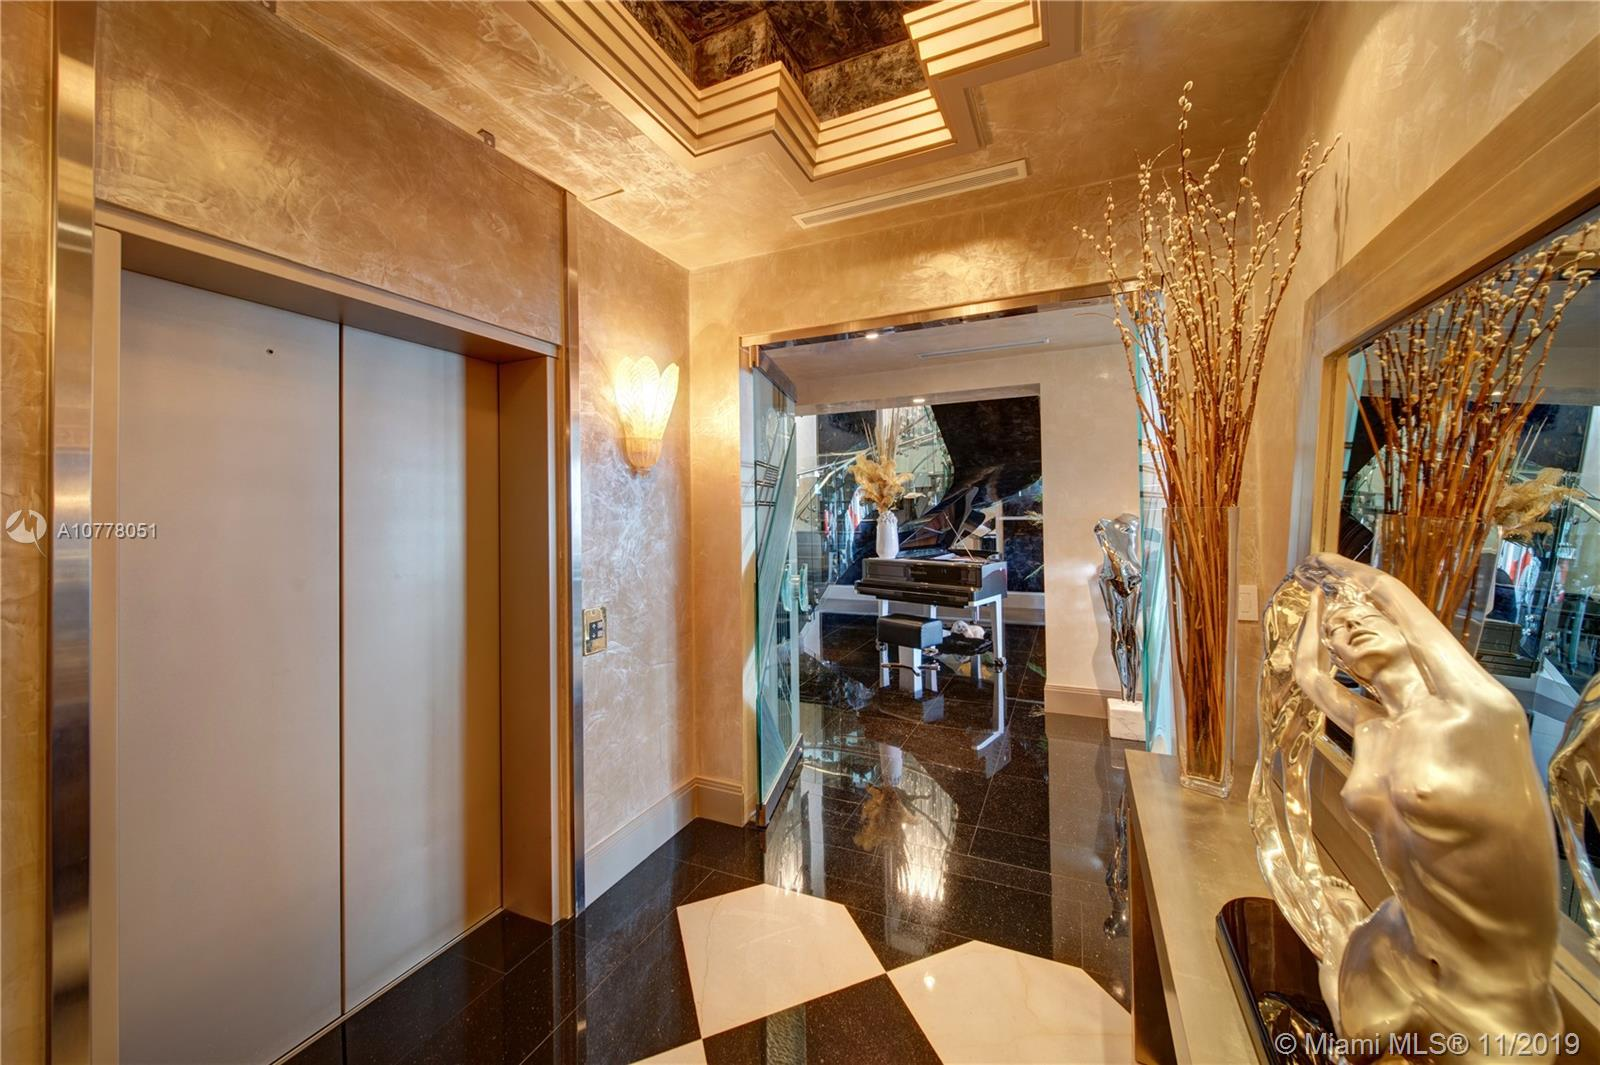 Photo of The Gables Club Apt TS-E that clicks through to the property detail page